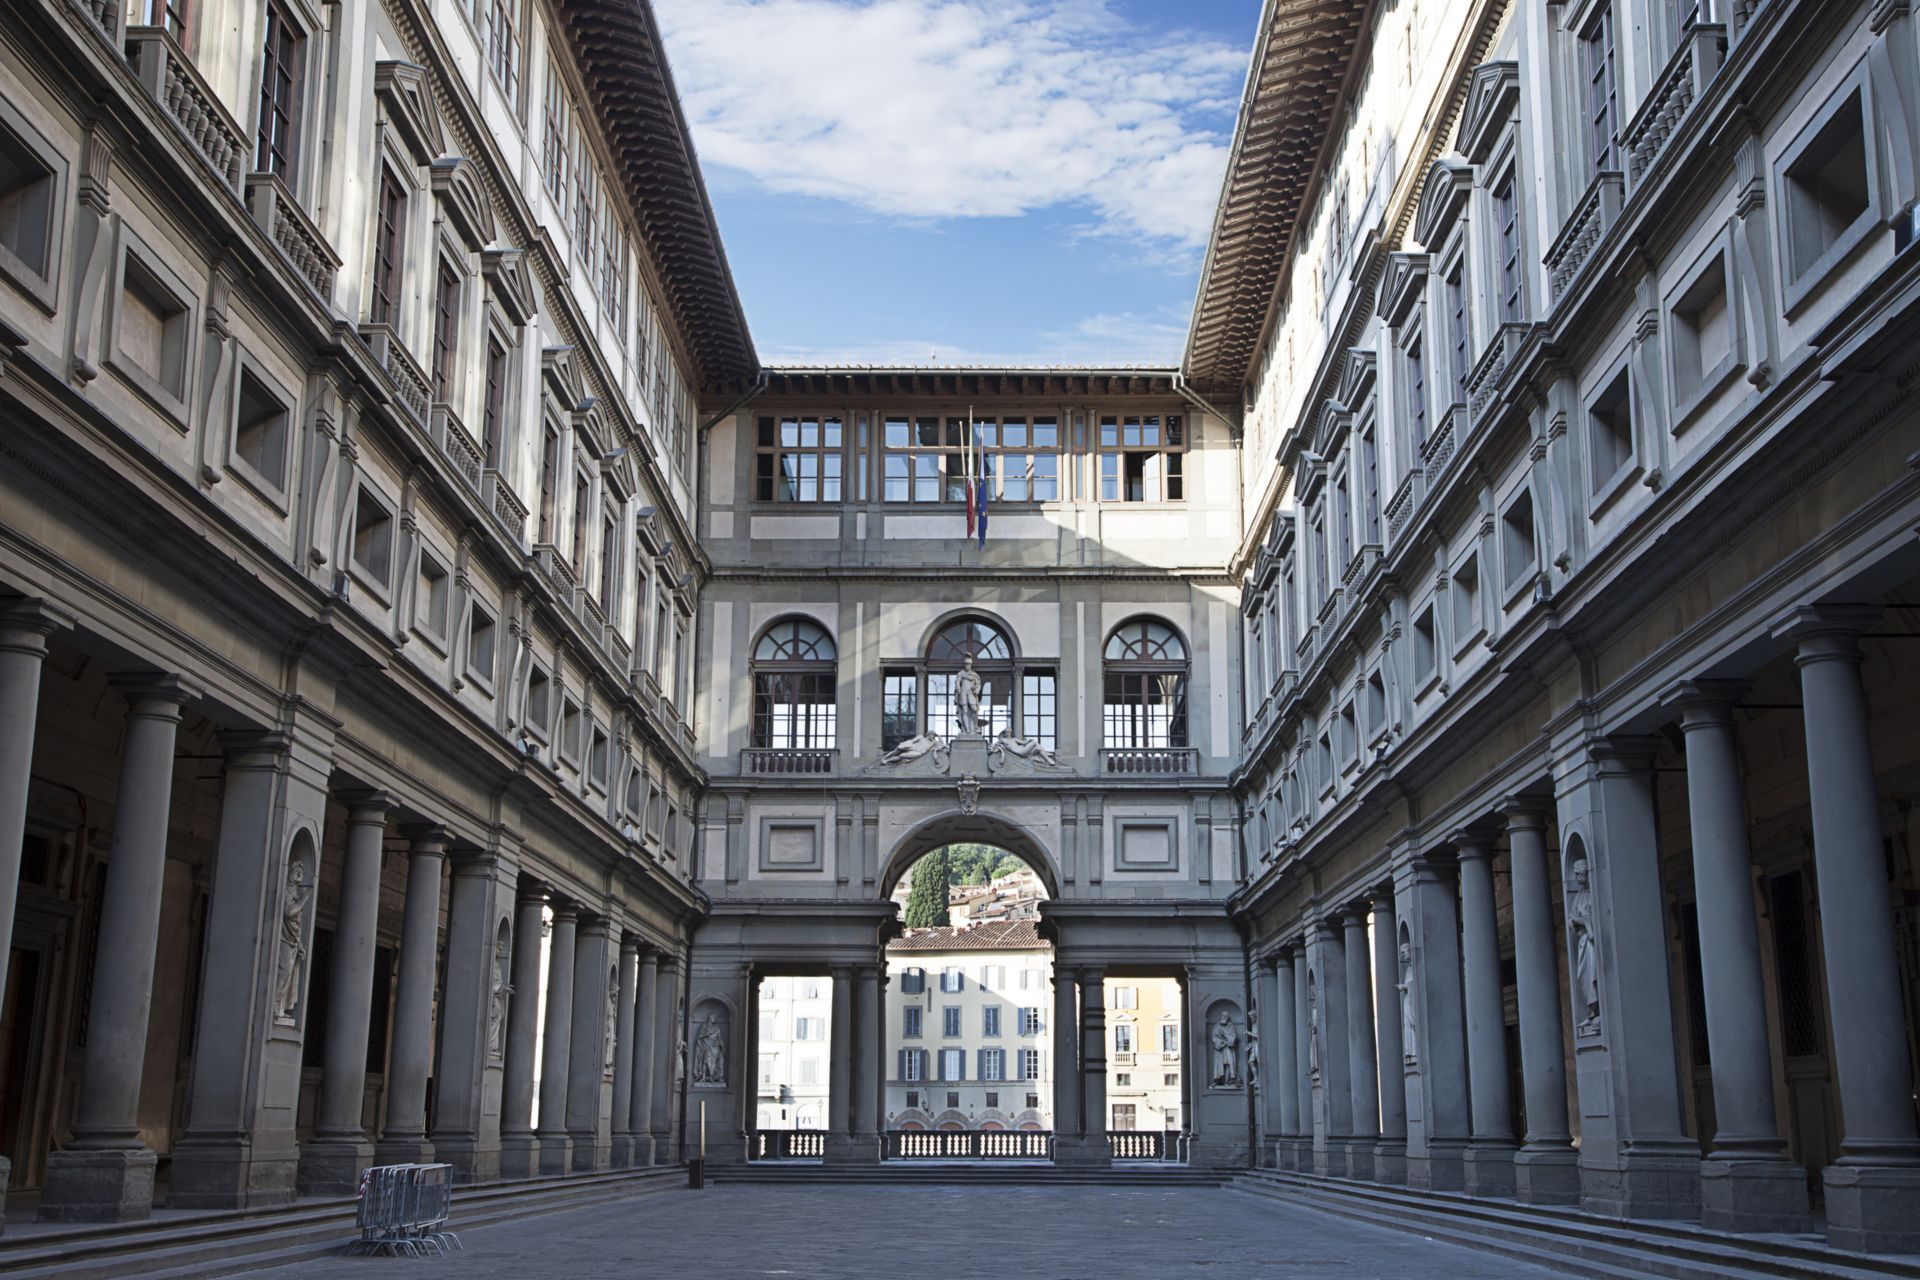 Uffizi Gallery, primary art museum of Florence. Tuscany, Italy